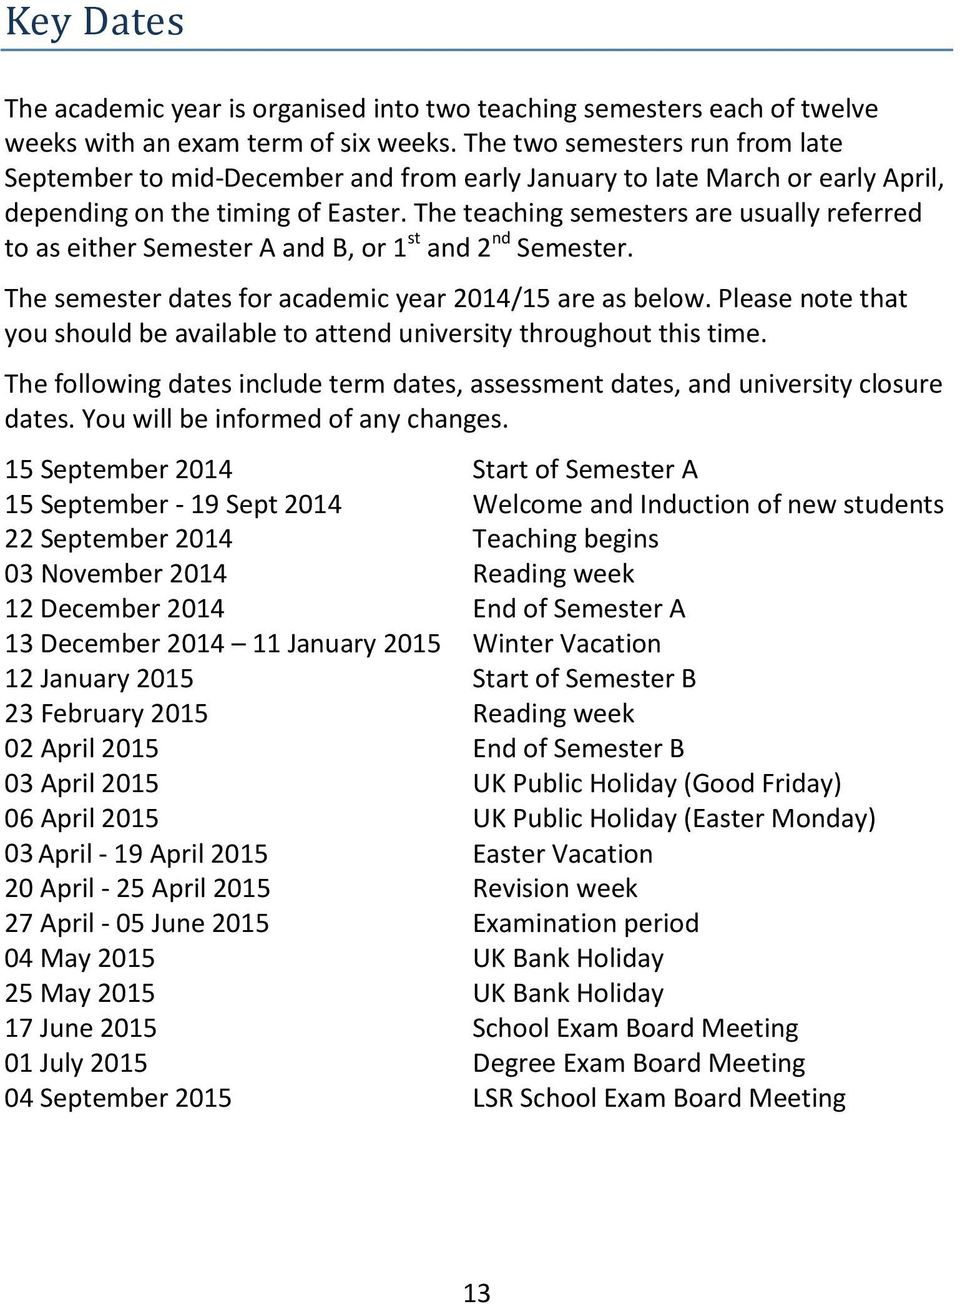 The teaching semesters are usually referred to as either Semester A and B, or 1 st and 2 nd Semester. The semester dates for academic year 2014/15 are as below.